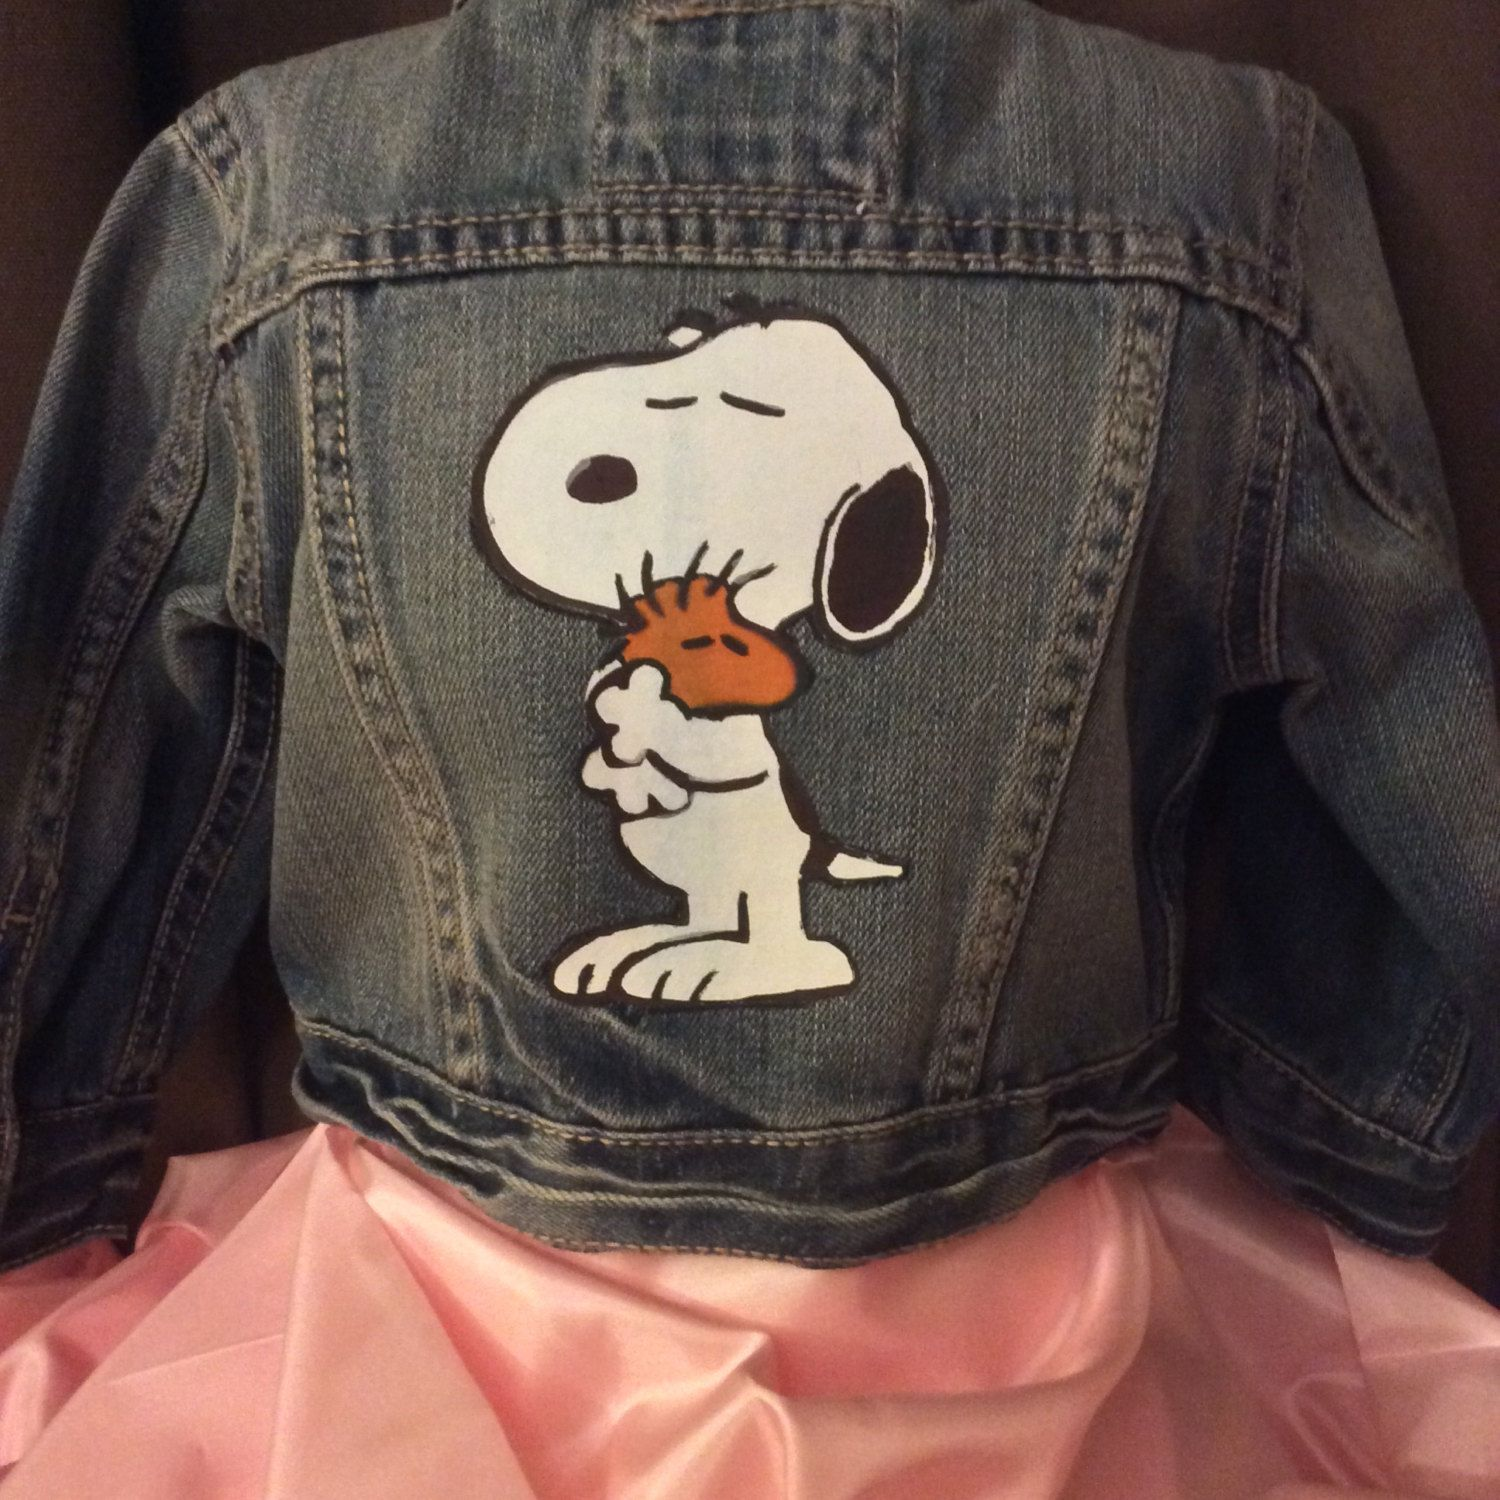 Items similar to Snoopy Jean Jacket-Boys or Girls Snoopy-Add Lace for Girls-Peanuts Jacket-Charlie Brown-Peanuts Birthday Party-Kids Jean Jacket on Etsy